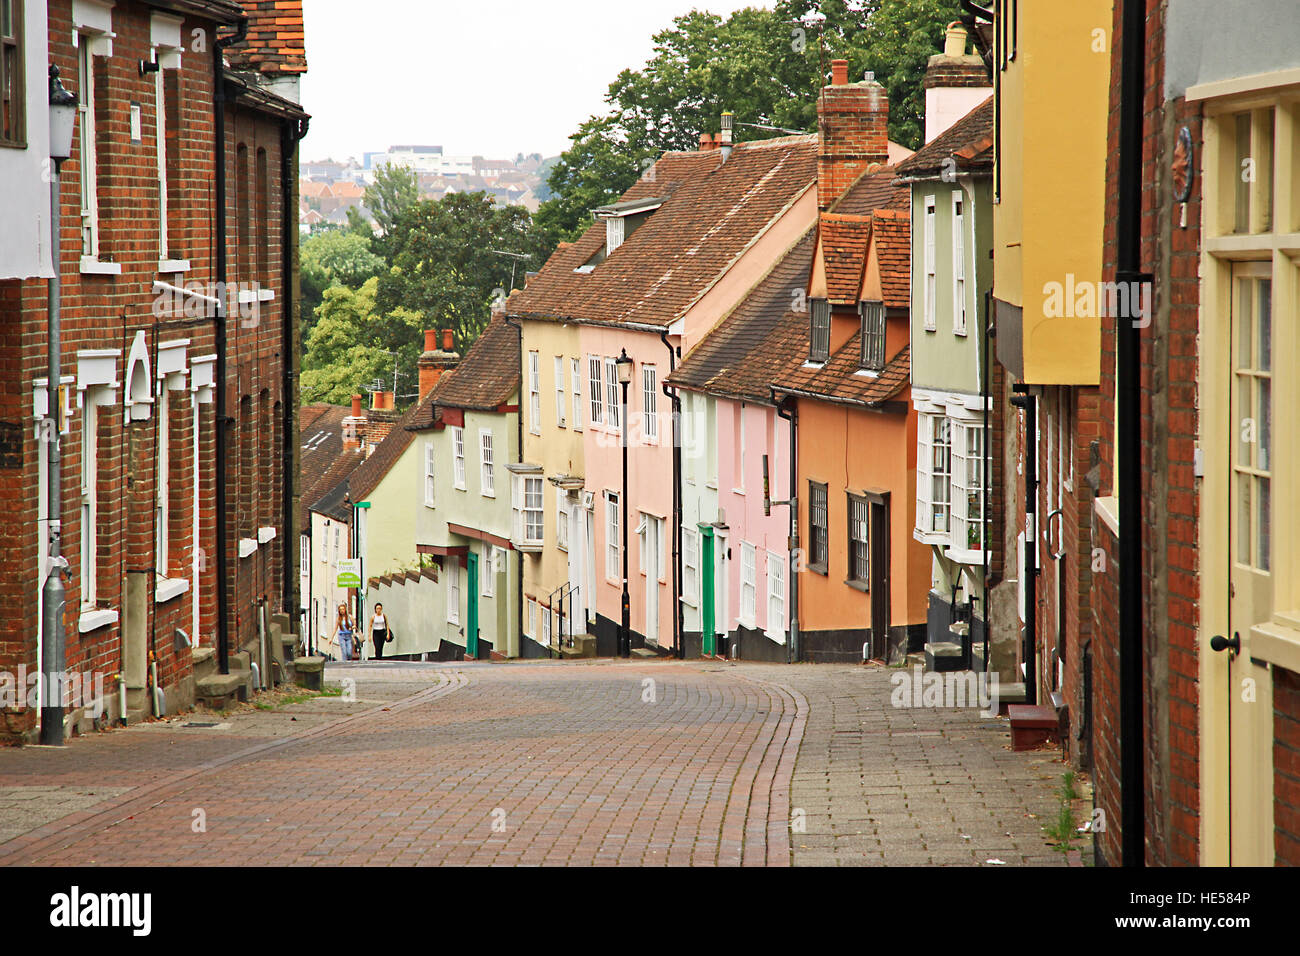 Old block paved  street in Colchester the county town of Essex England - Stock Image